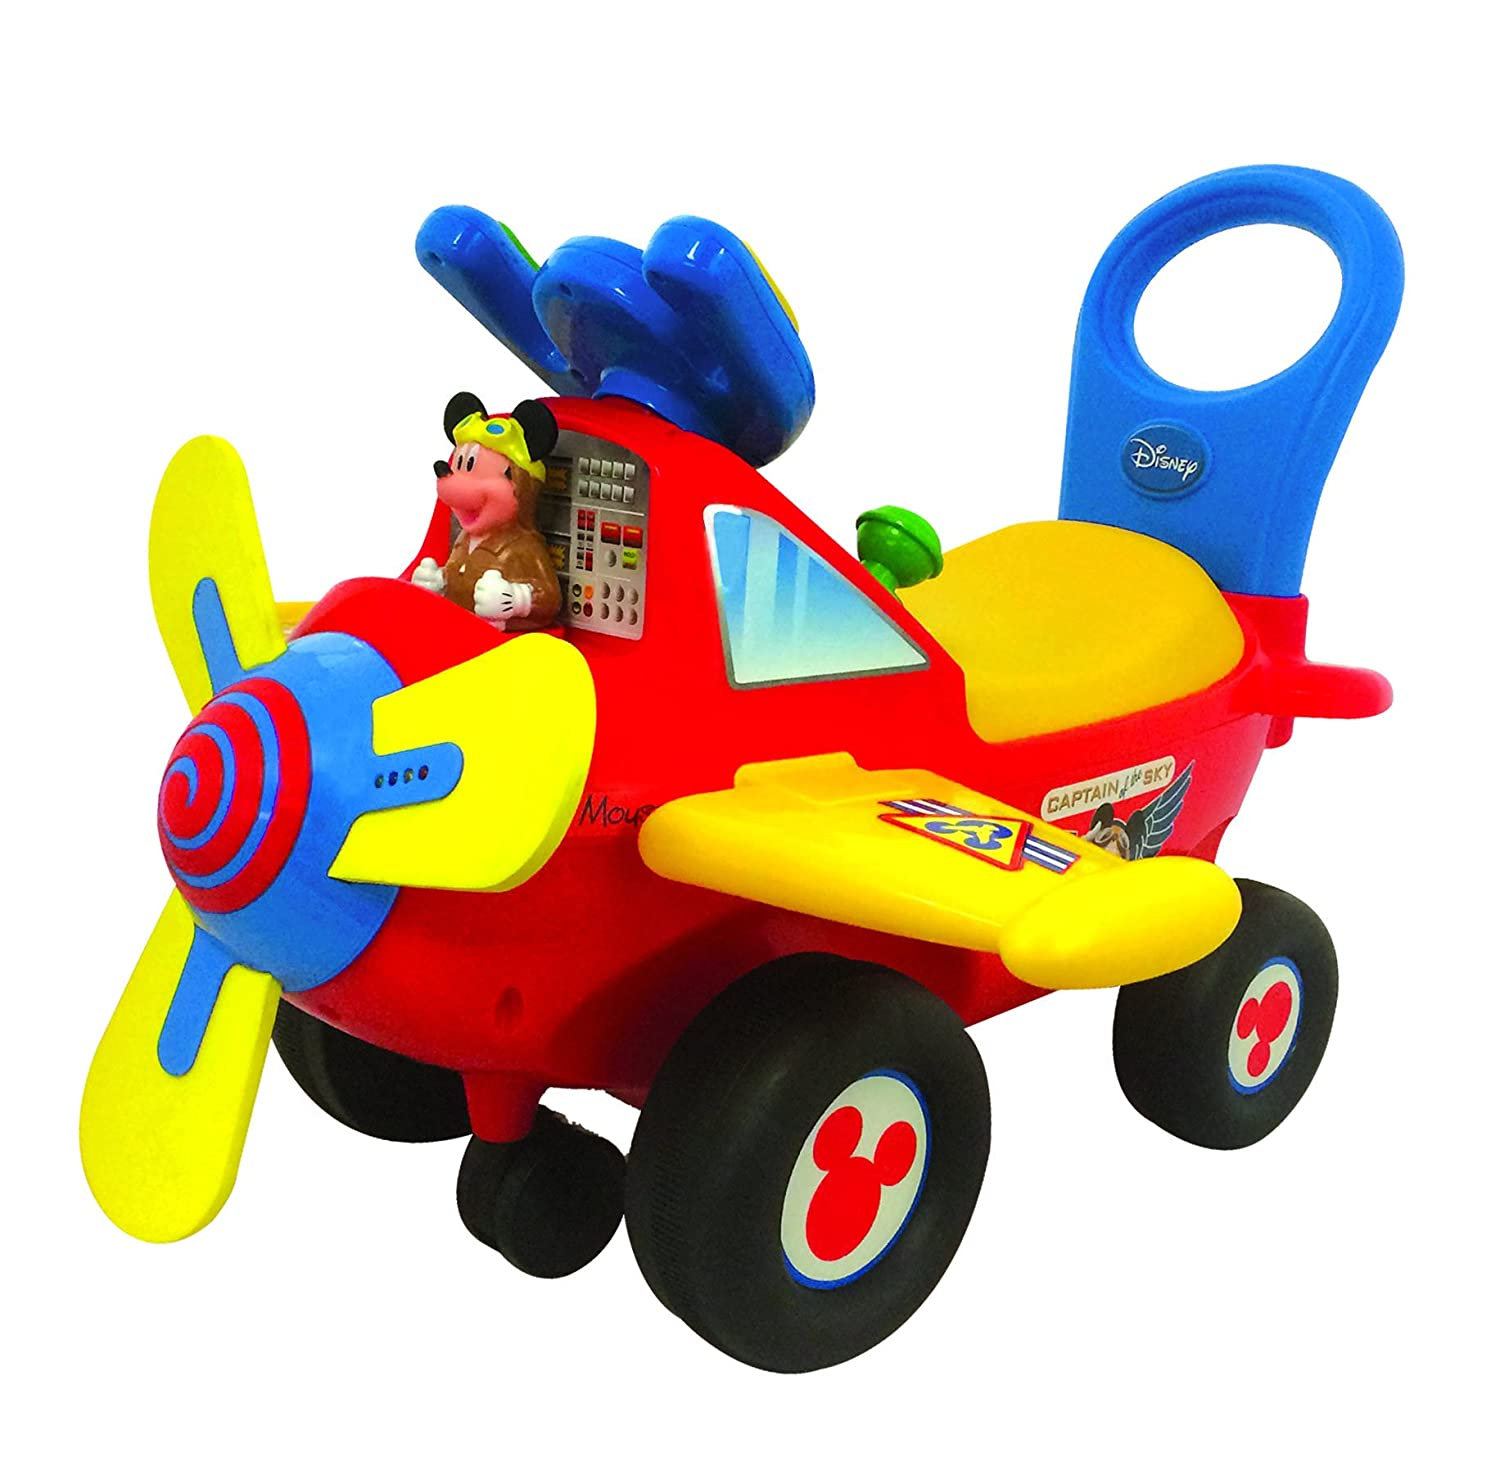 Kiddieland Disney Mickey Mouse Clubhouse Plane Light & Sound Activity Ride-On